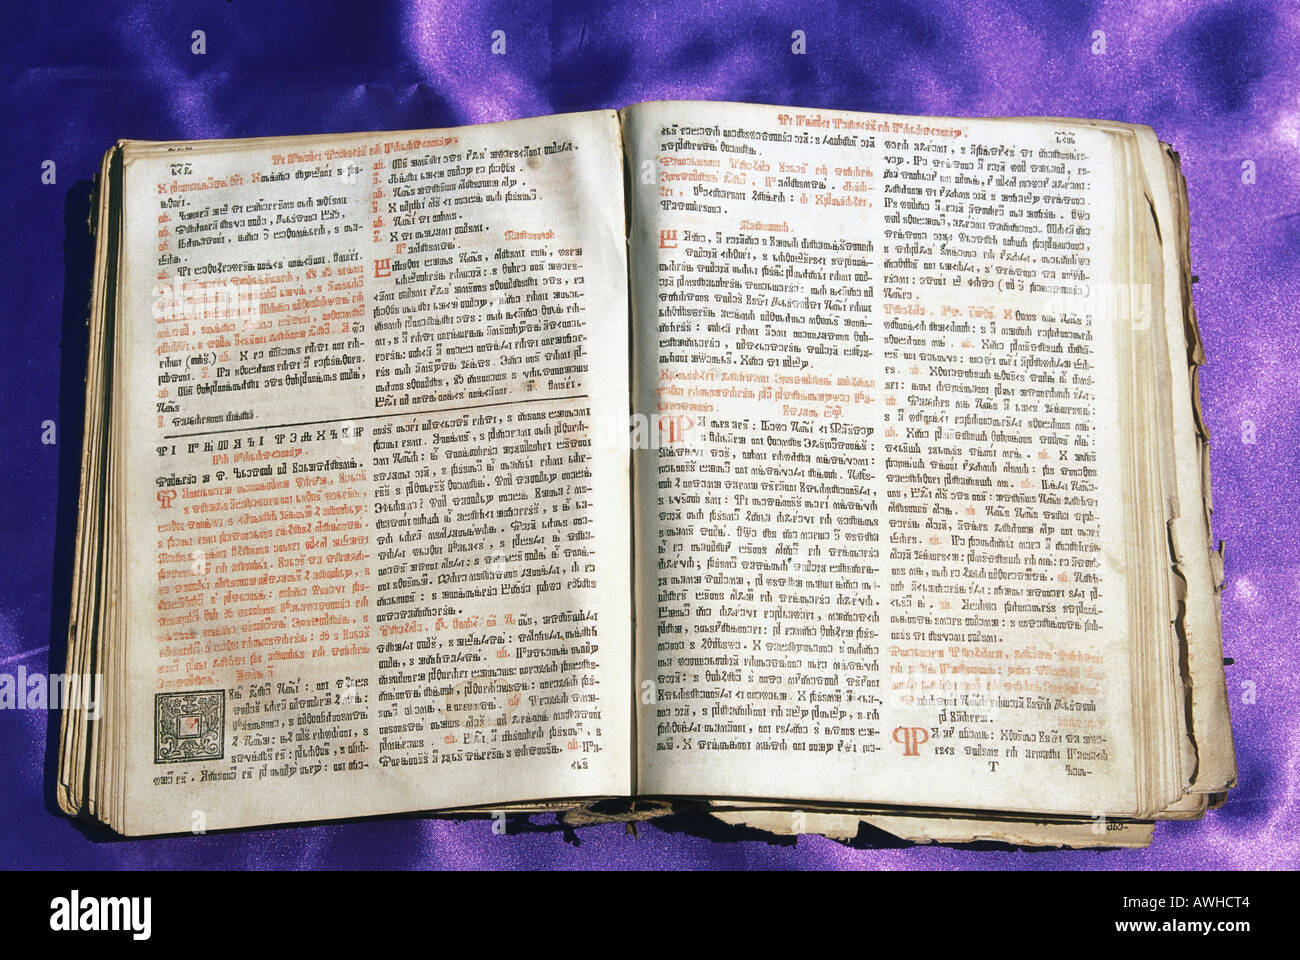 Croatia, holy book using Glagolitic script spread among Slavonic clergy - Stock Image